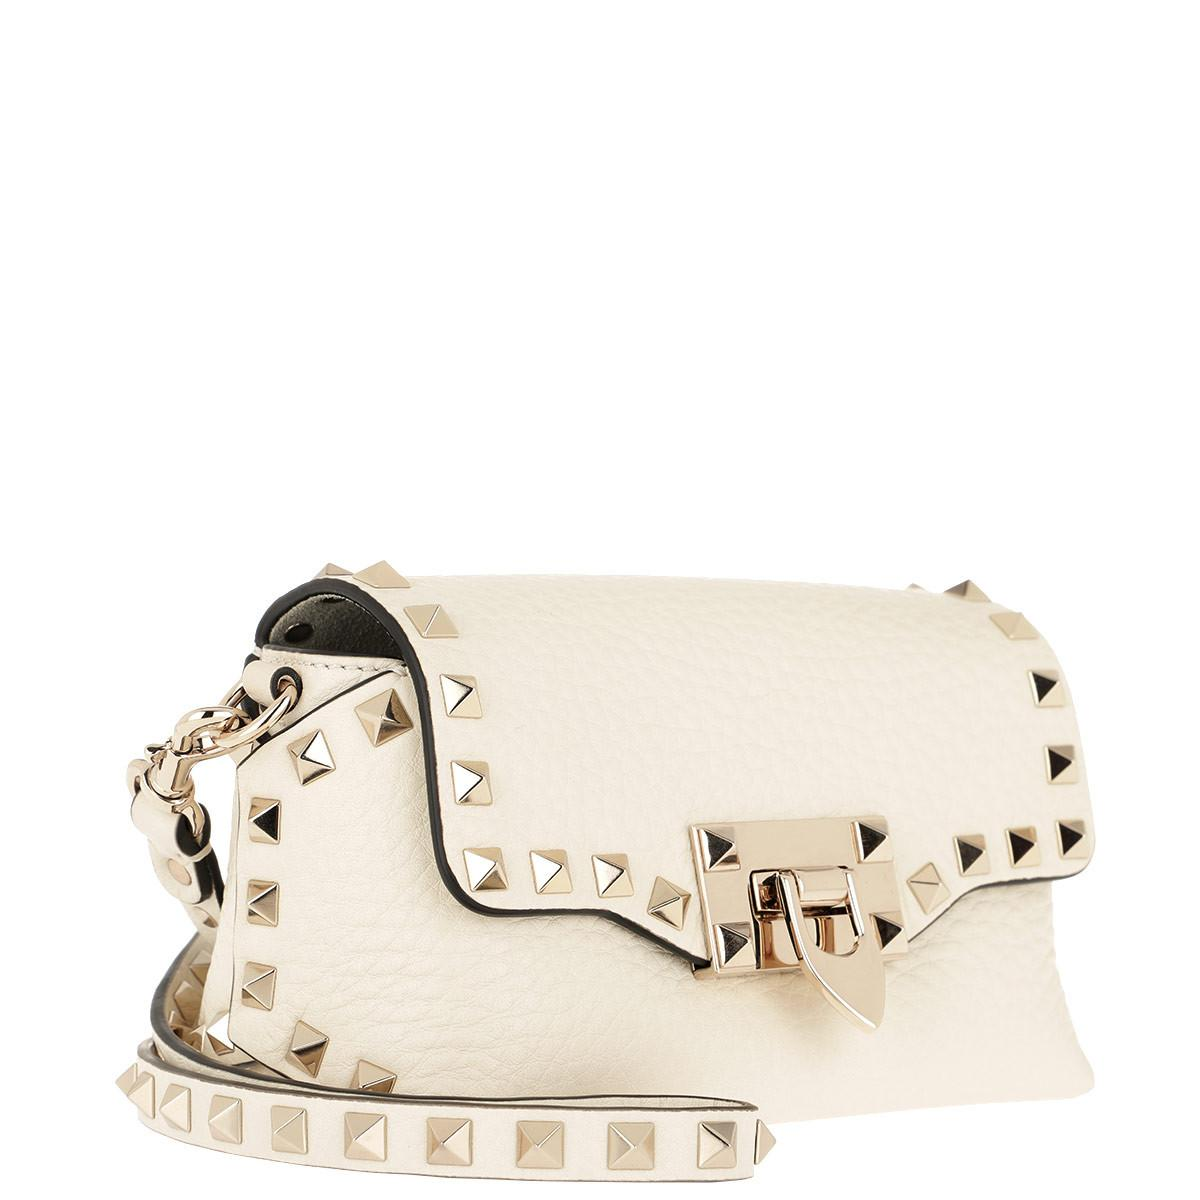 61f607125a Valentino Rockstud Crossbody Bag Small 2 Leather Light Ivory in ...